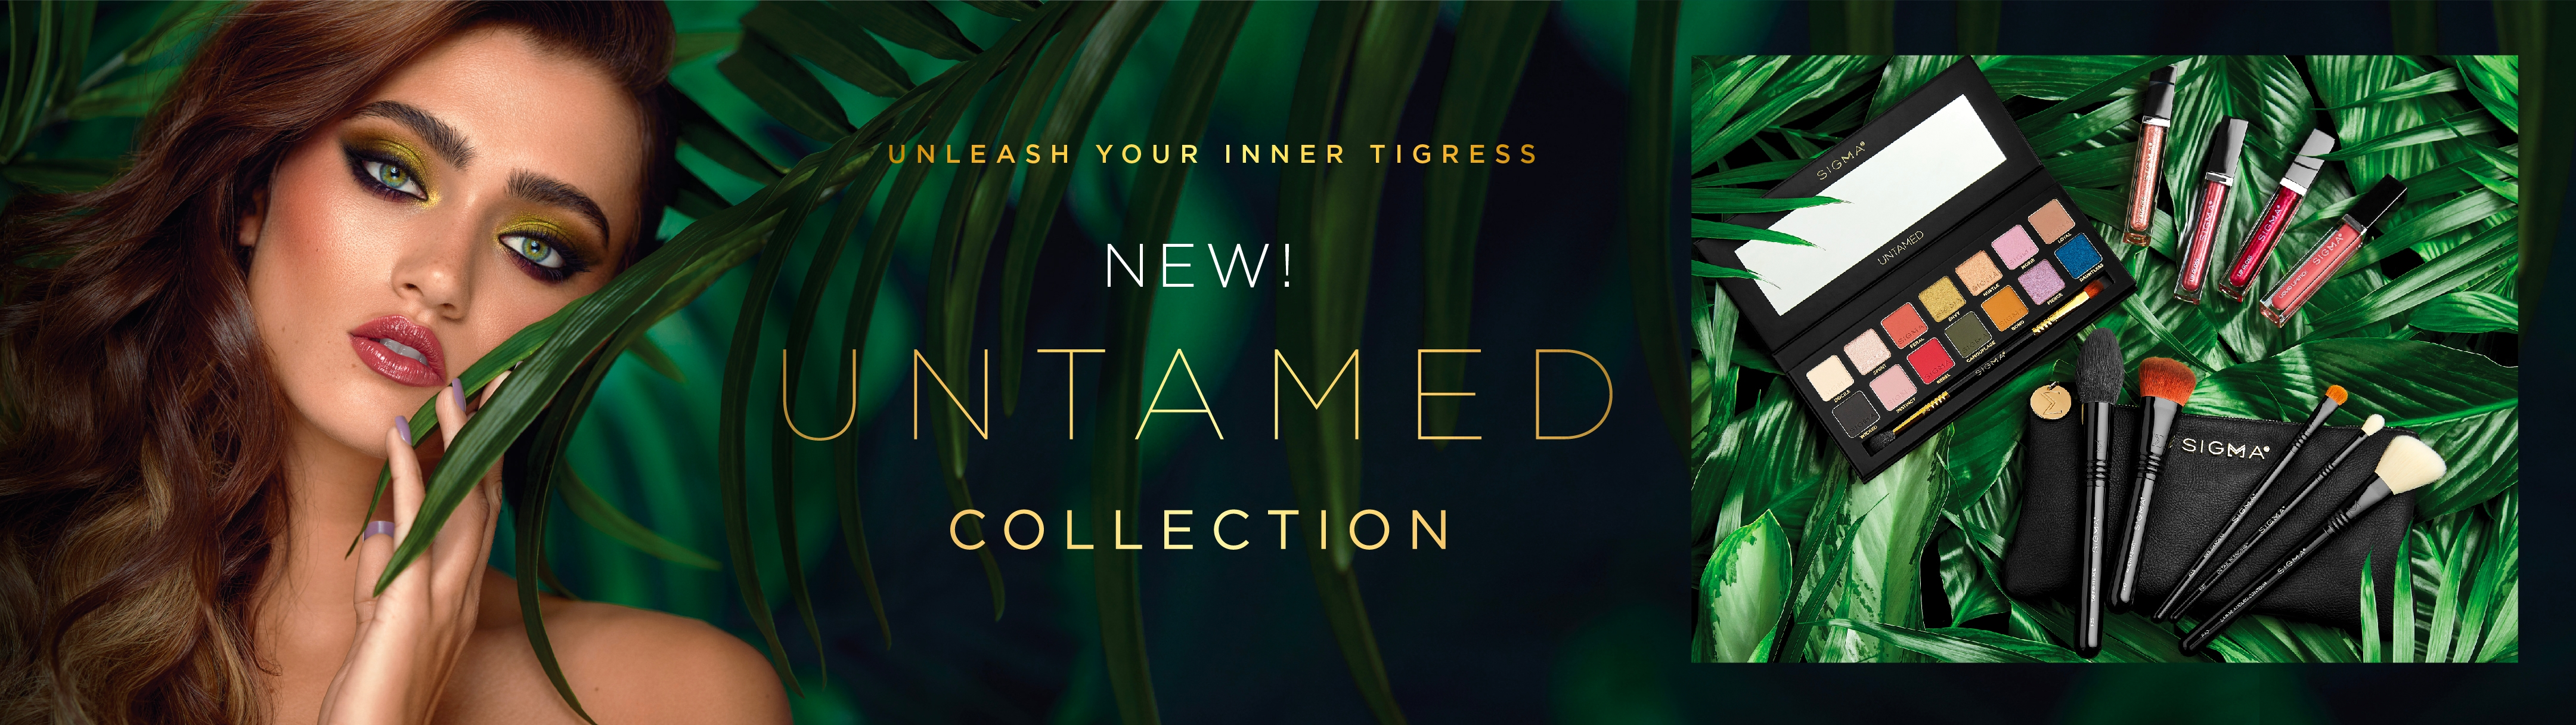 Untamed Collection